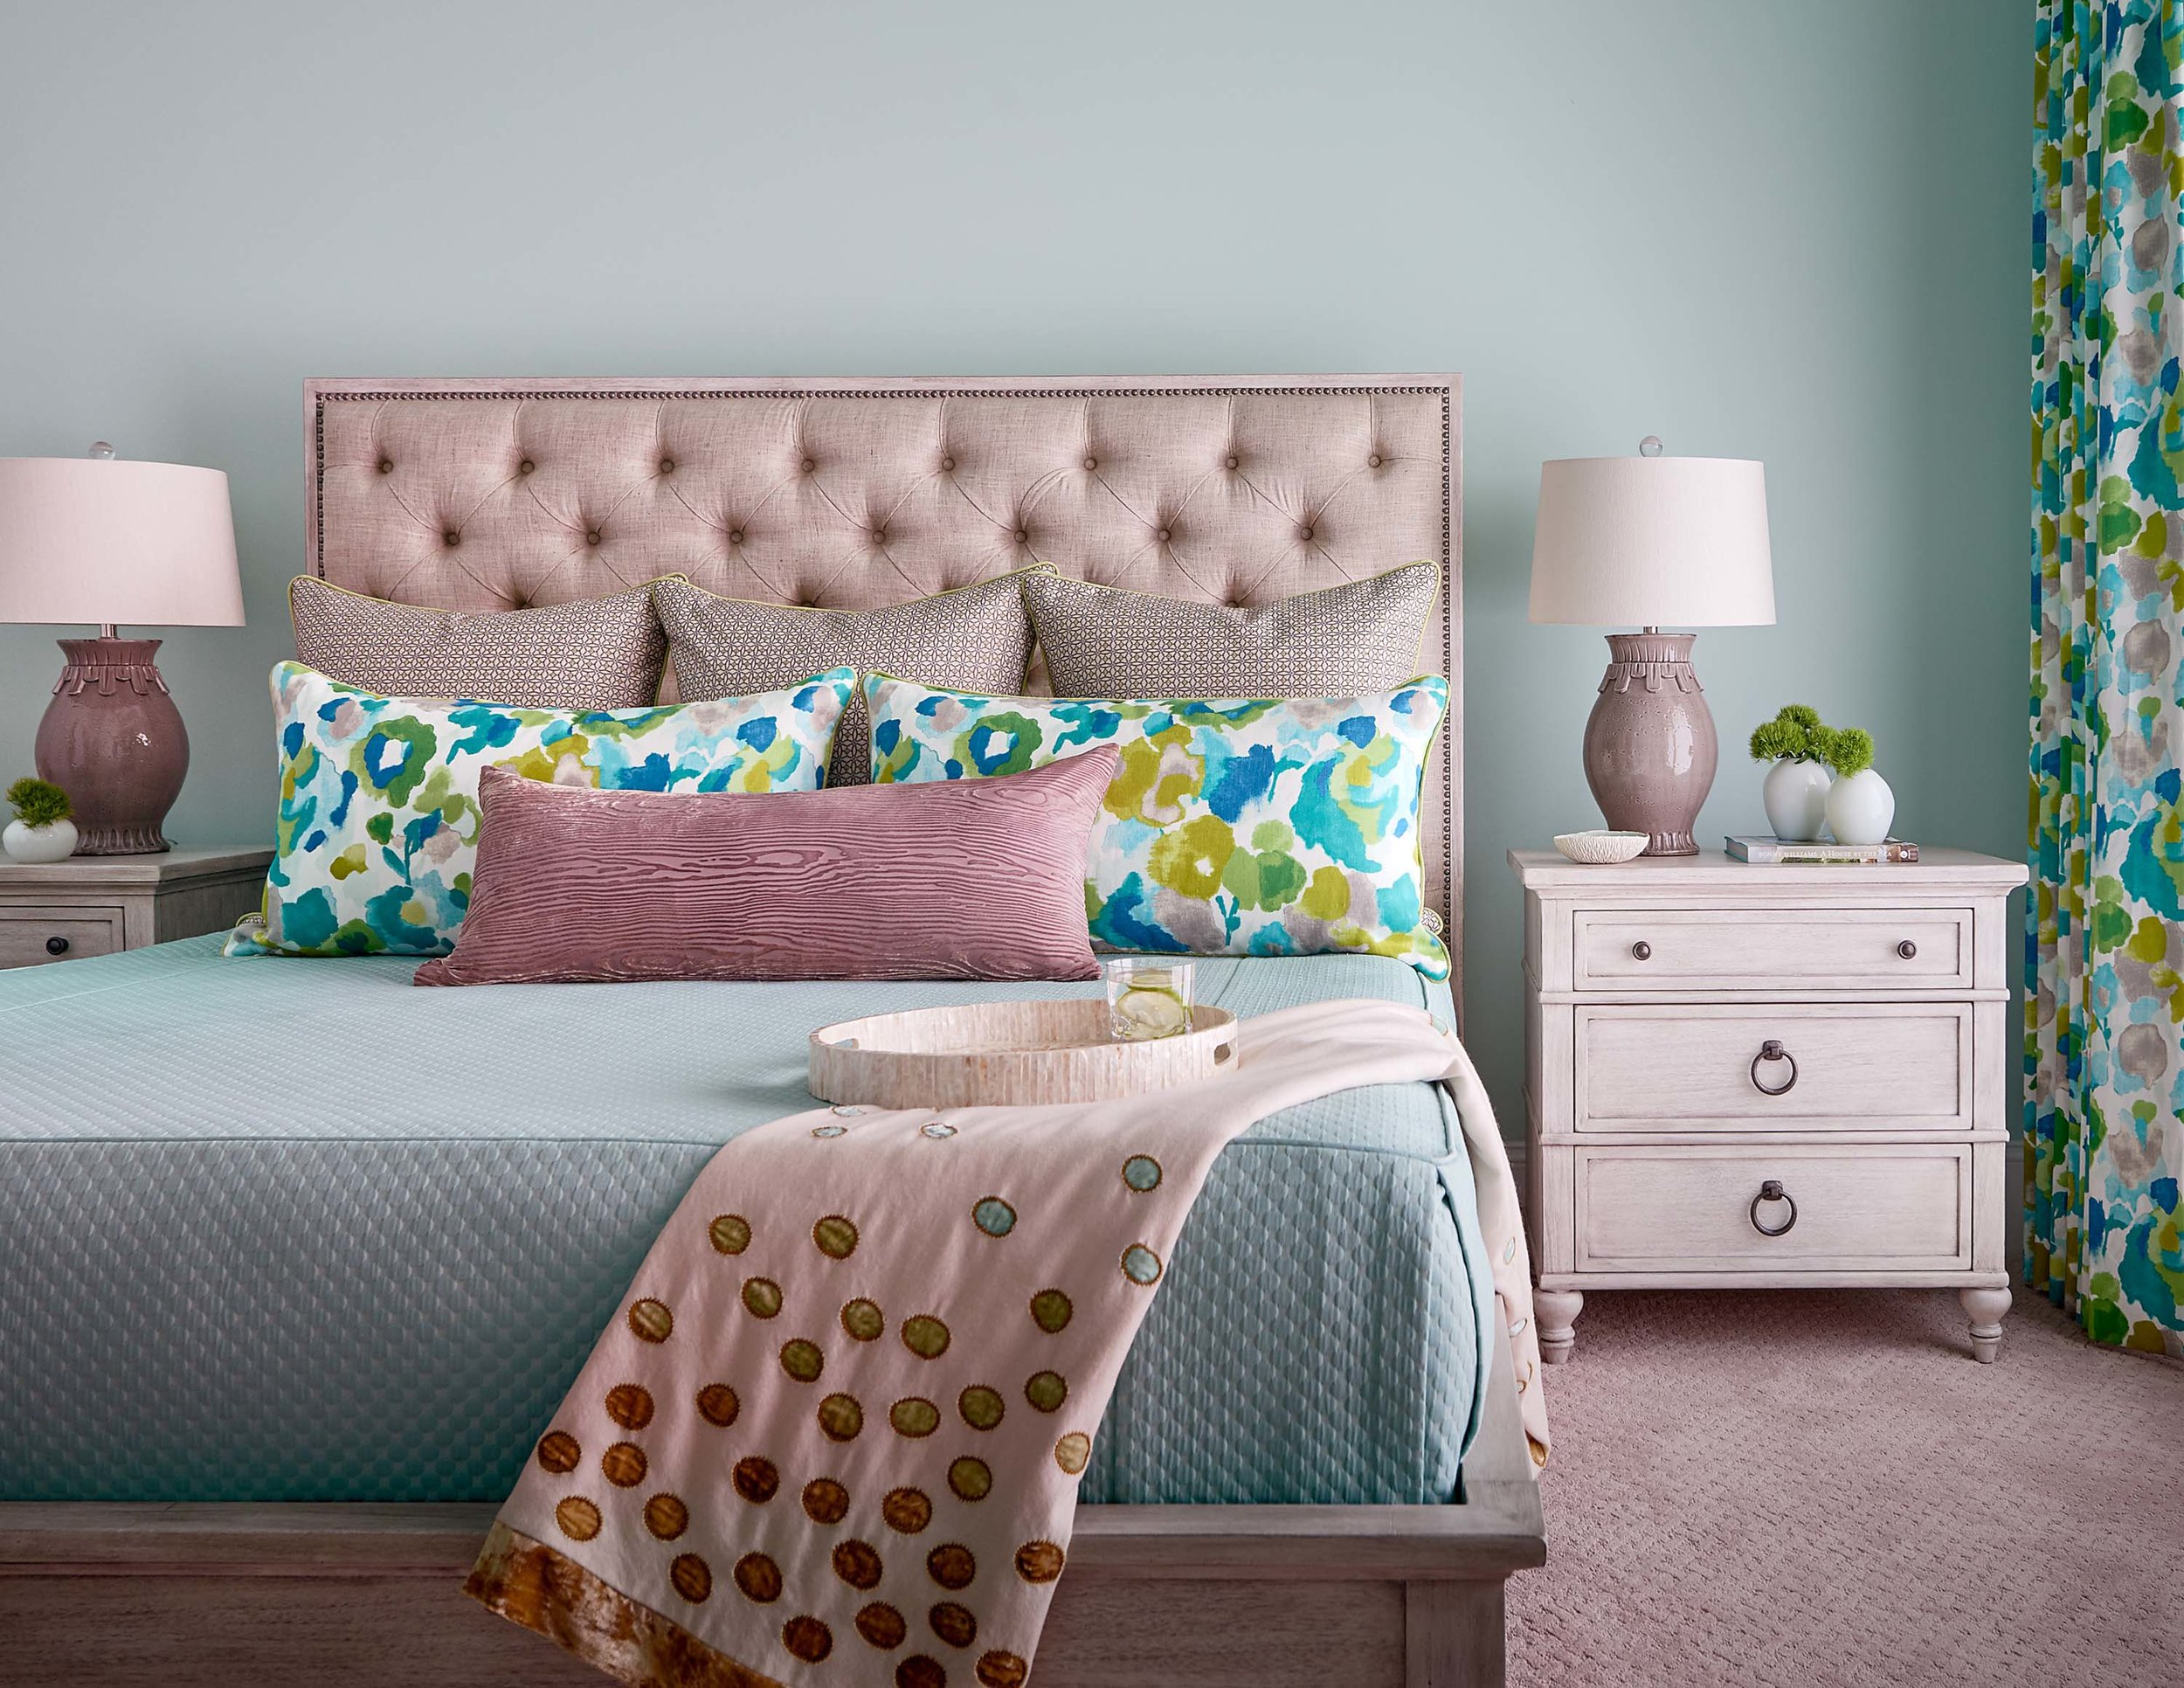 Guest bedroom with tufted headboard, aqua bedding and white-washed furniture, pottery lamps